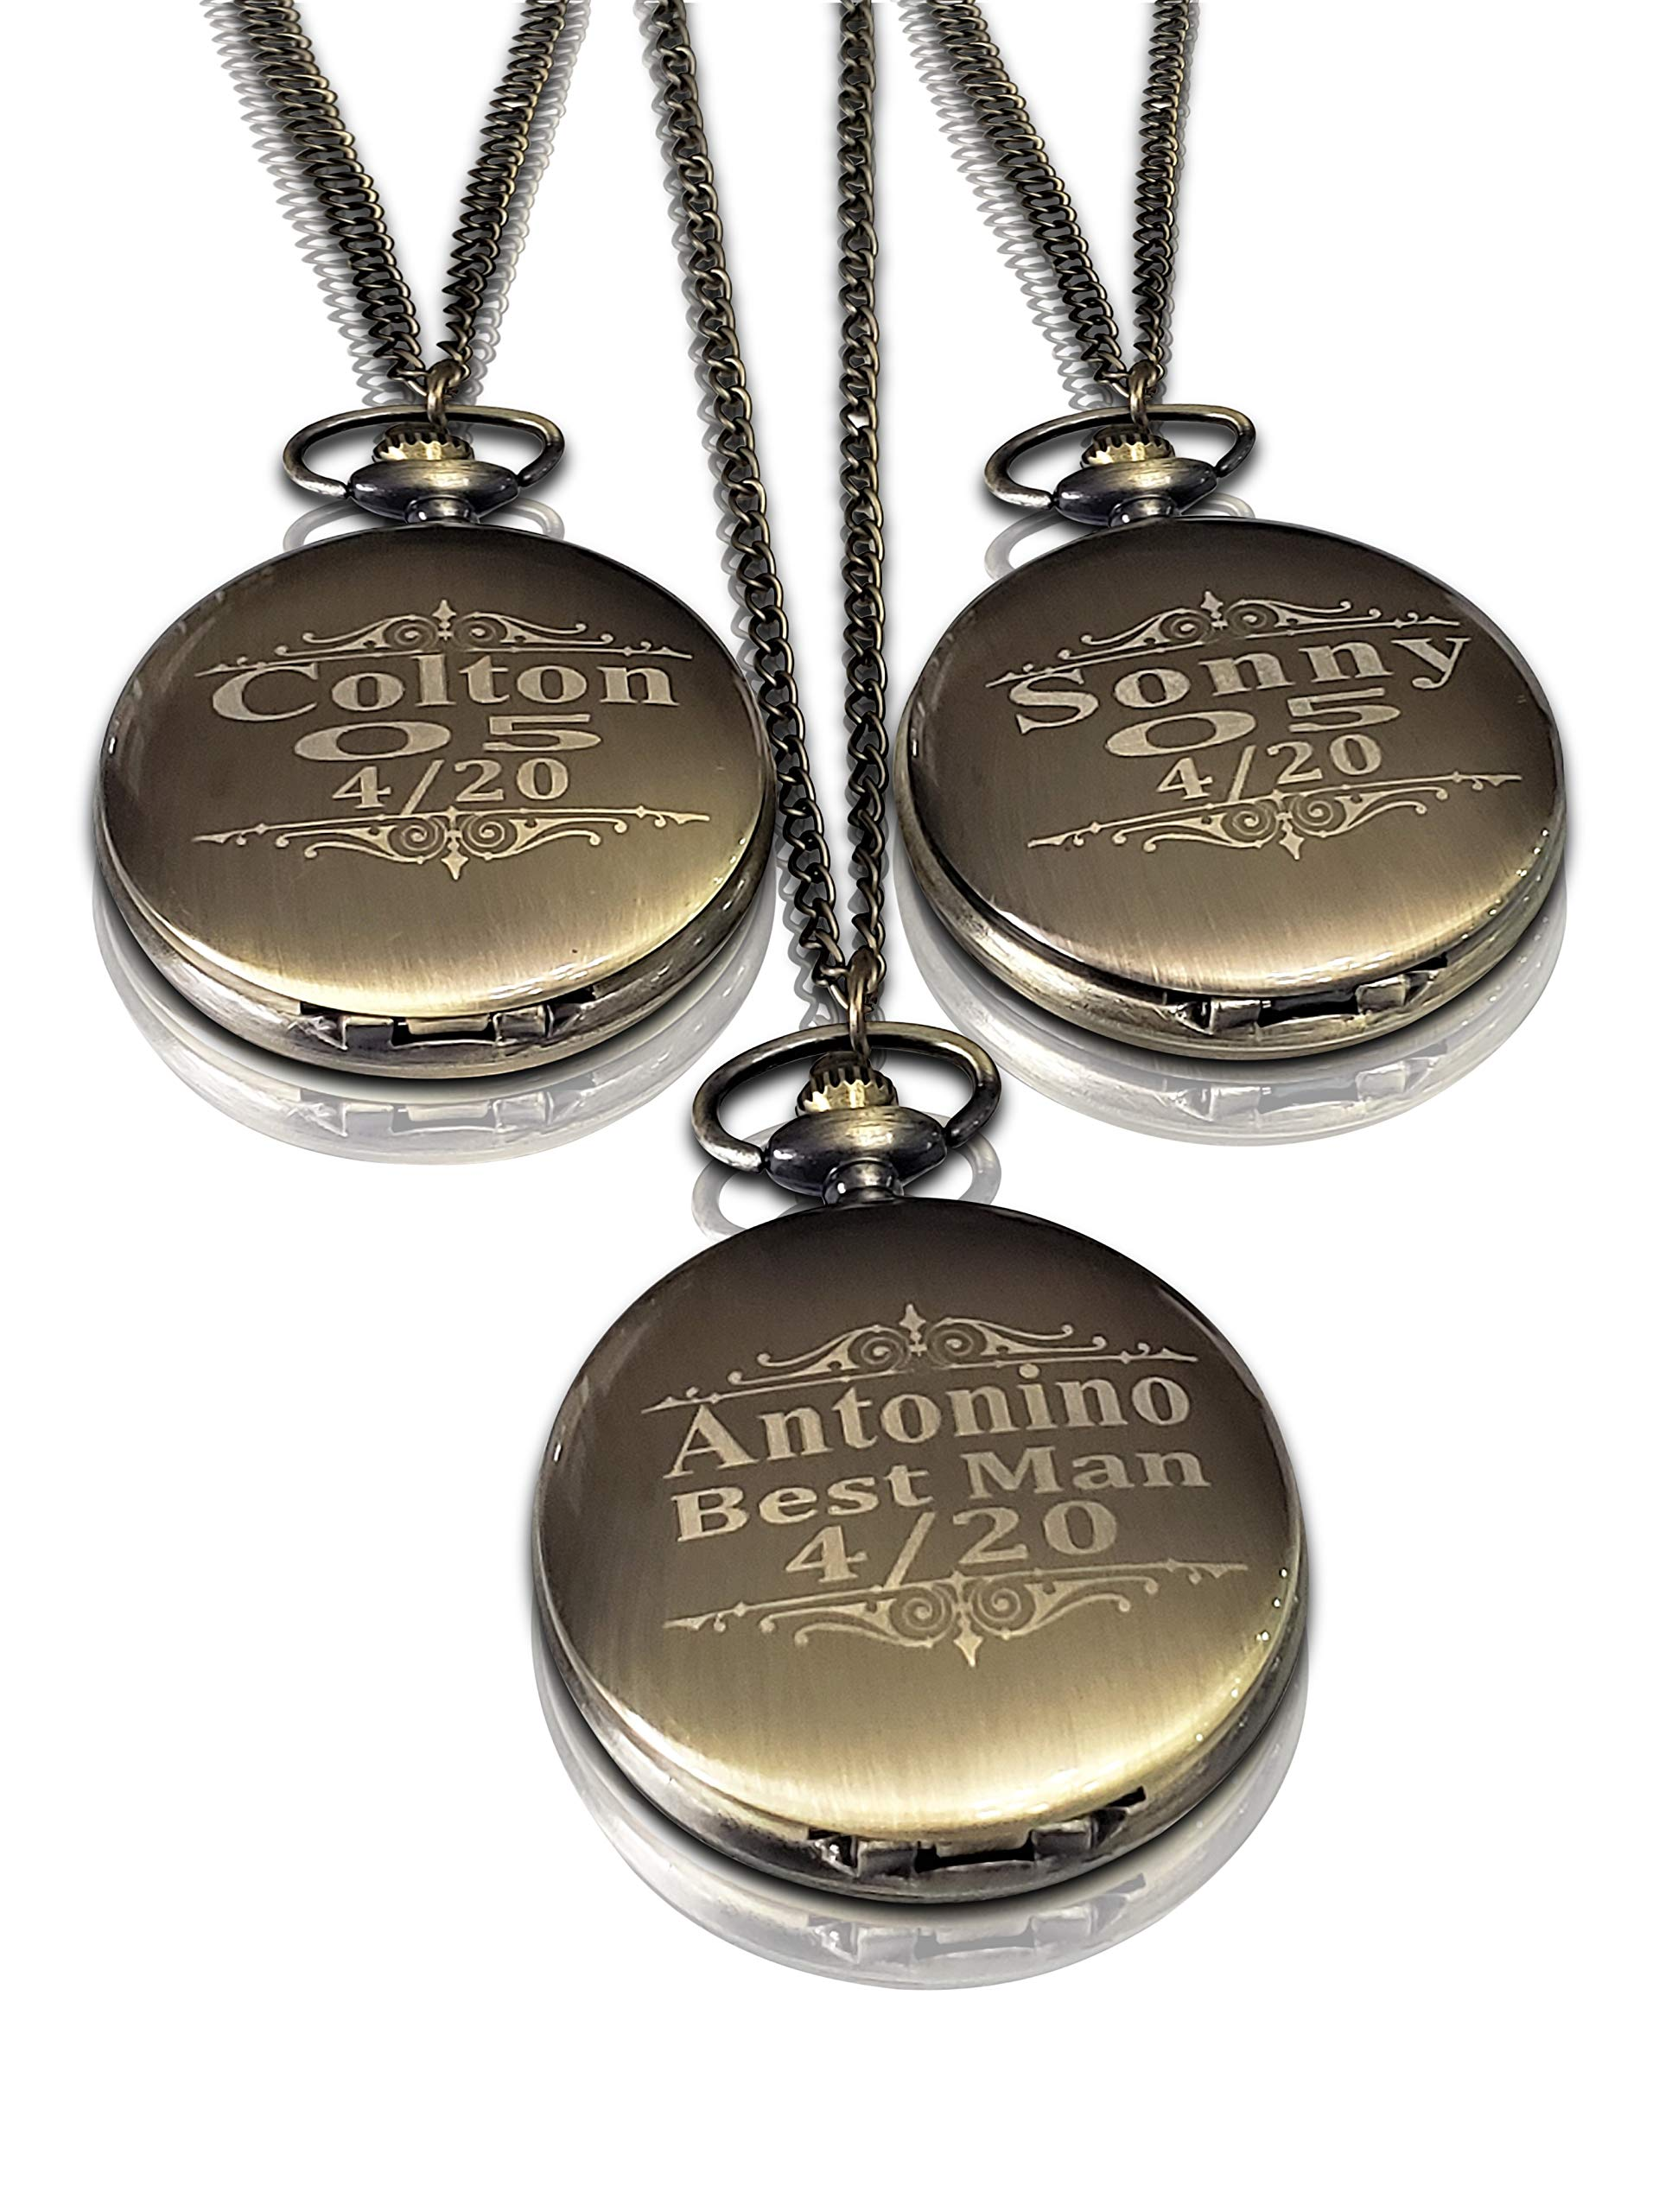 Personalized Pocket Watch Set, 3 Groomsmen & Best Man Gifts, Free Engraving, Box and Chain Included. Custom Engraved (Gold Vintage)